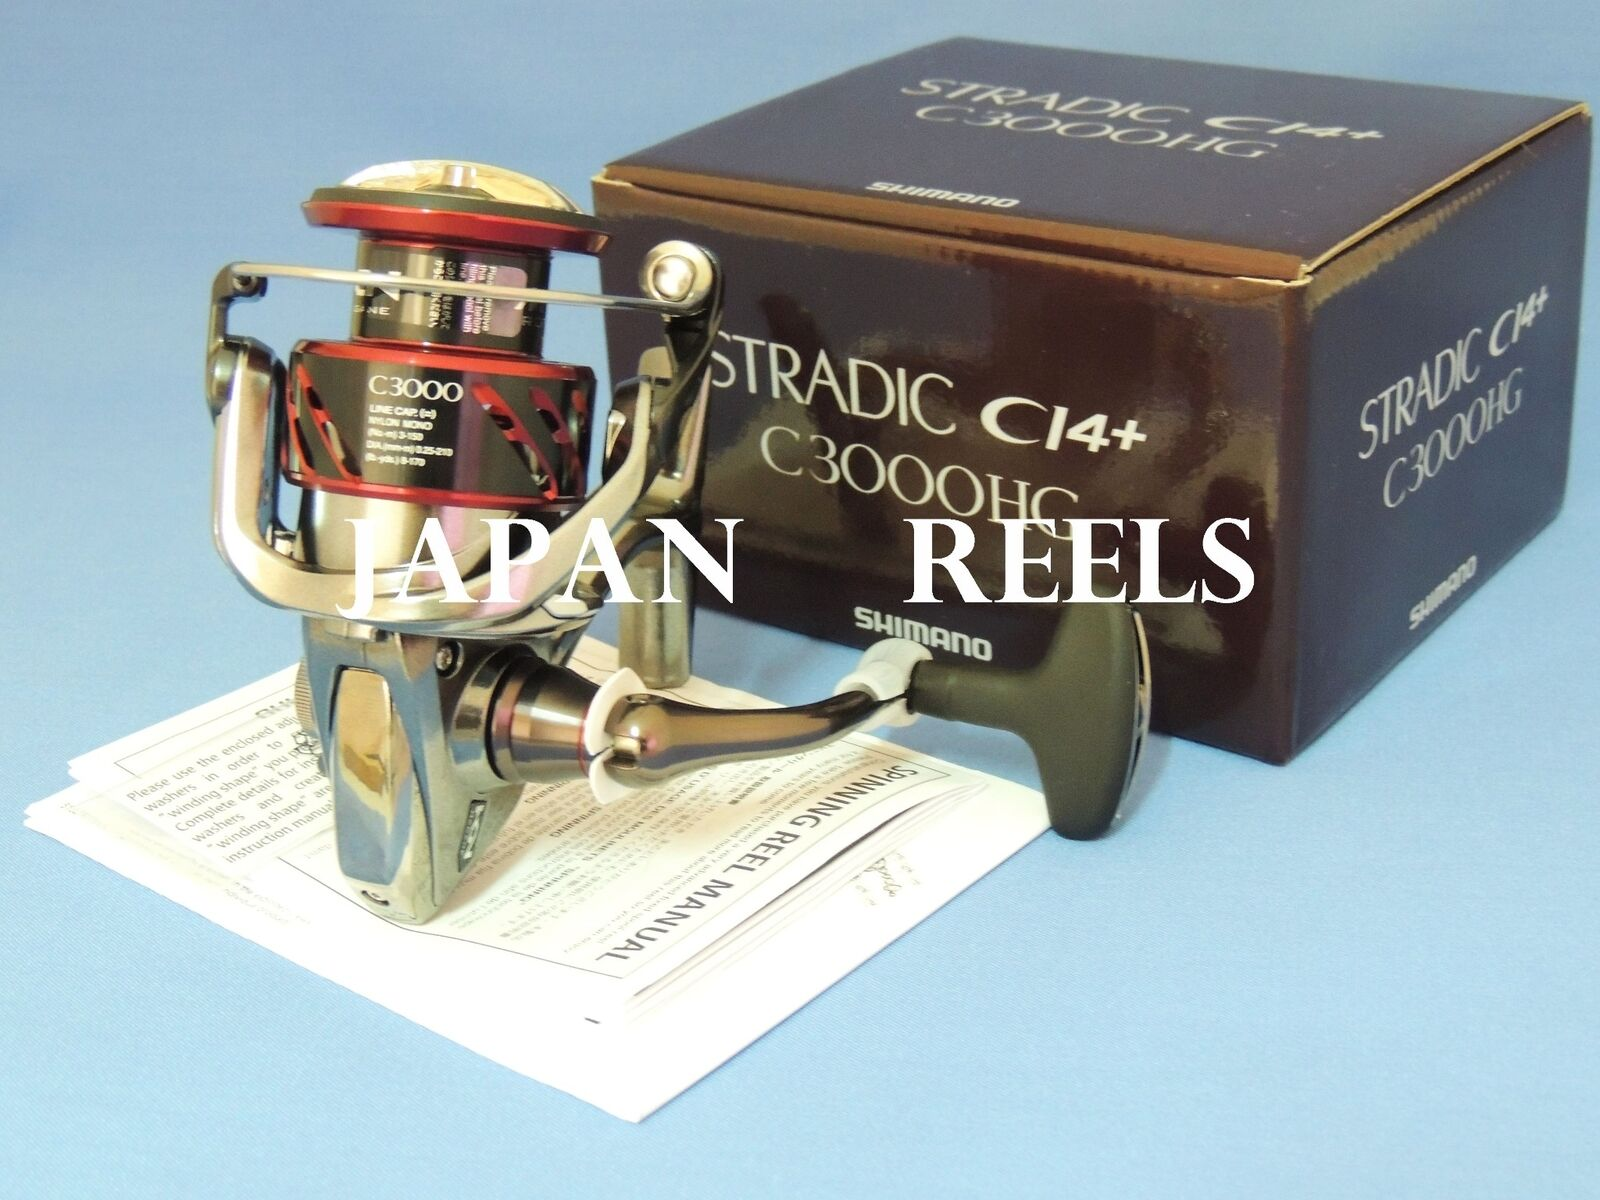 NEW SHIMANO 16 STRADIC  CI4+ C3000HG FB C3000 HG FB REEL 1-3 DAYS FAST DELIVERY  great offers